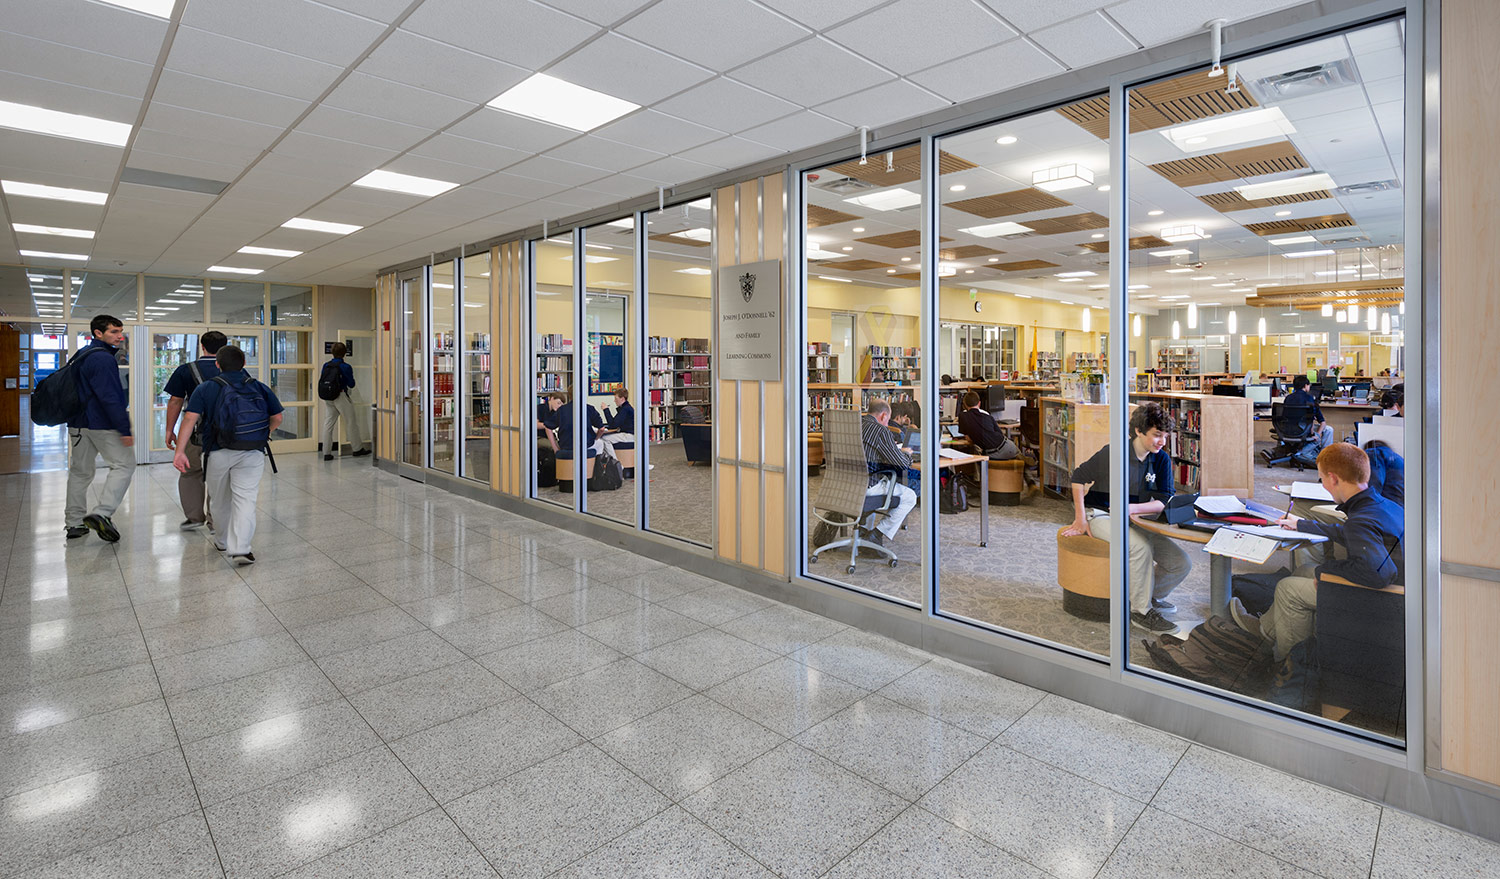 New windows into the Learning Commons reveals the activities within.